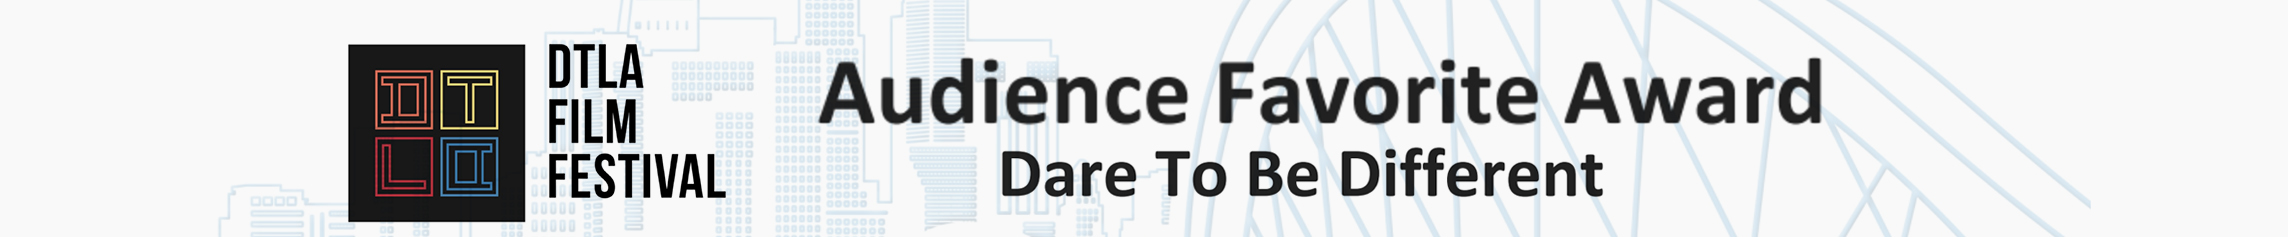 DTLA Film Festival - Audience Favorite Award - Dare to be Different